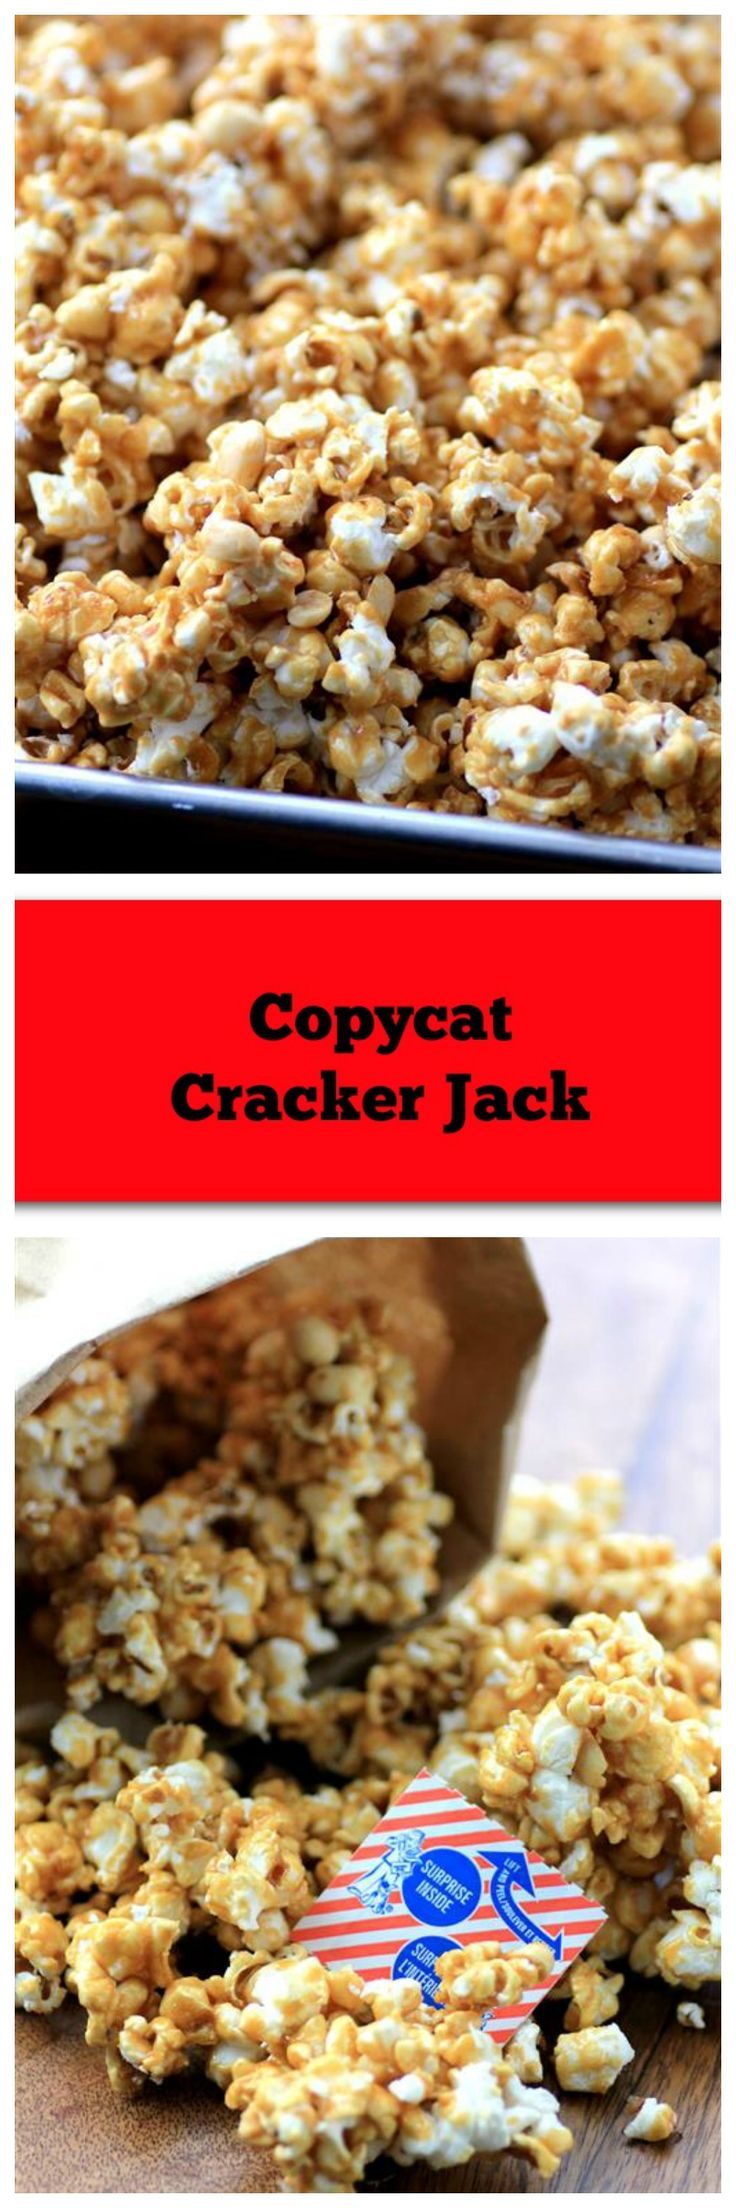 Copycat Cracker Jack